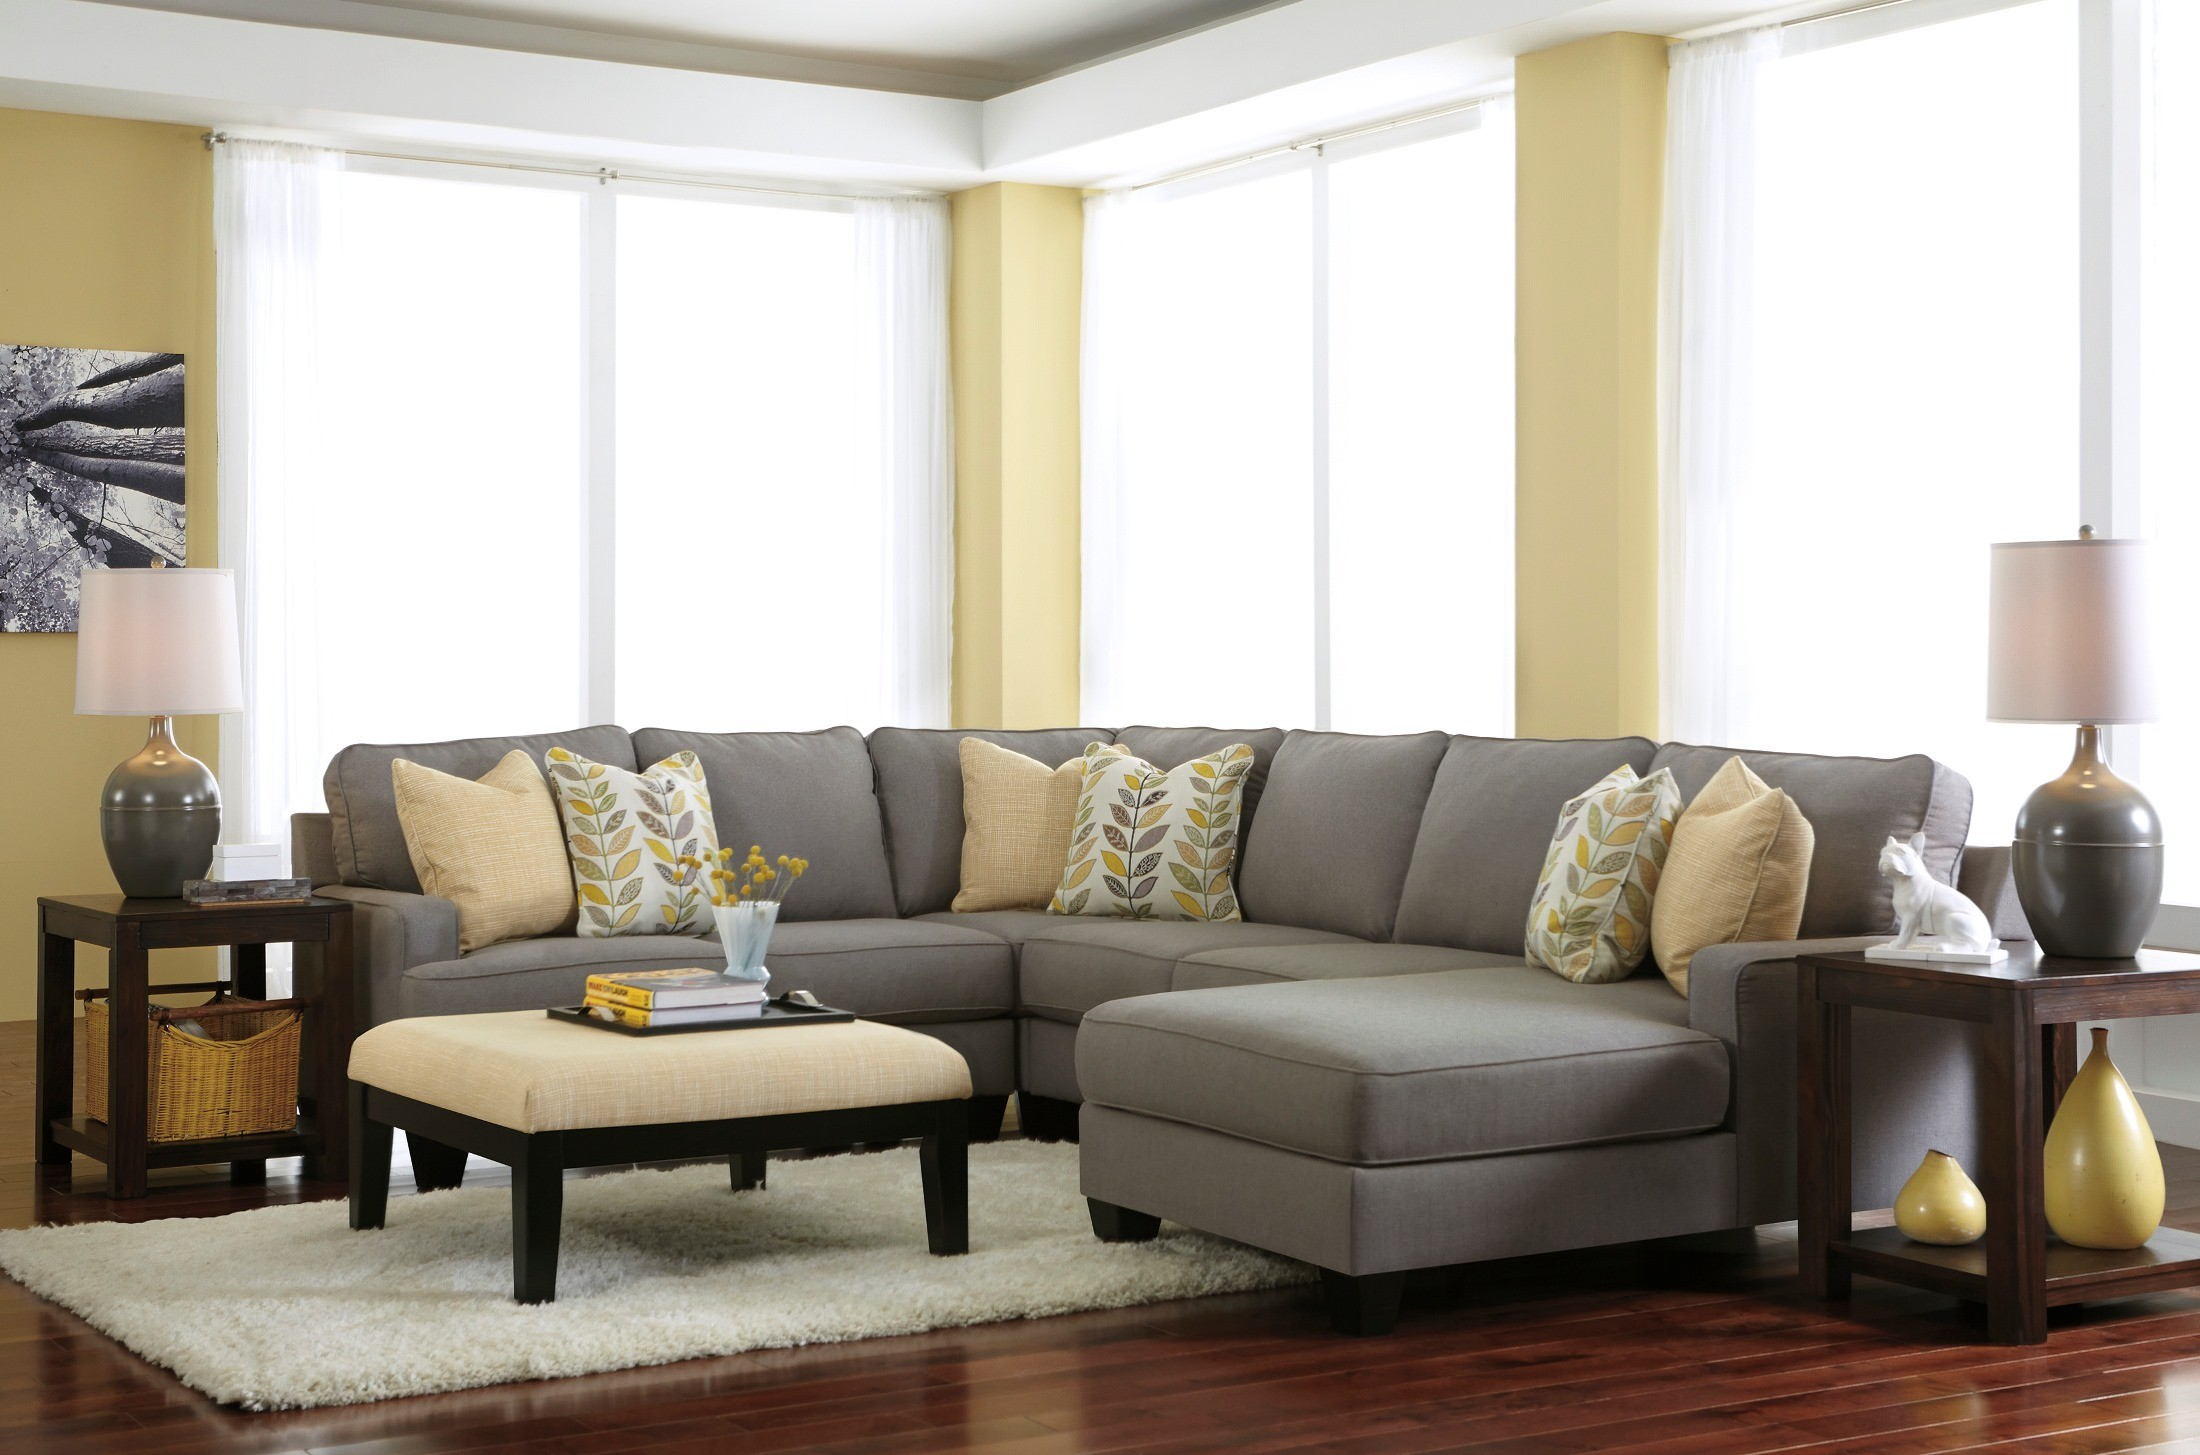 efo transitional sofa collections item winfrey chaise sofas furniture outlet lsg with sectional albany